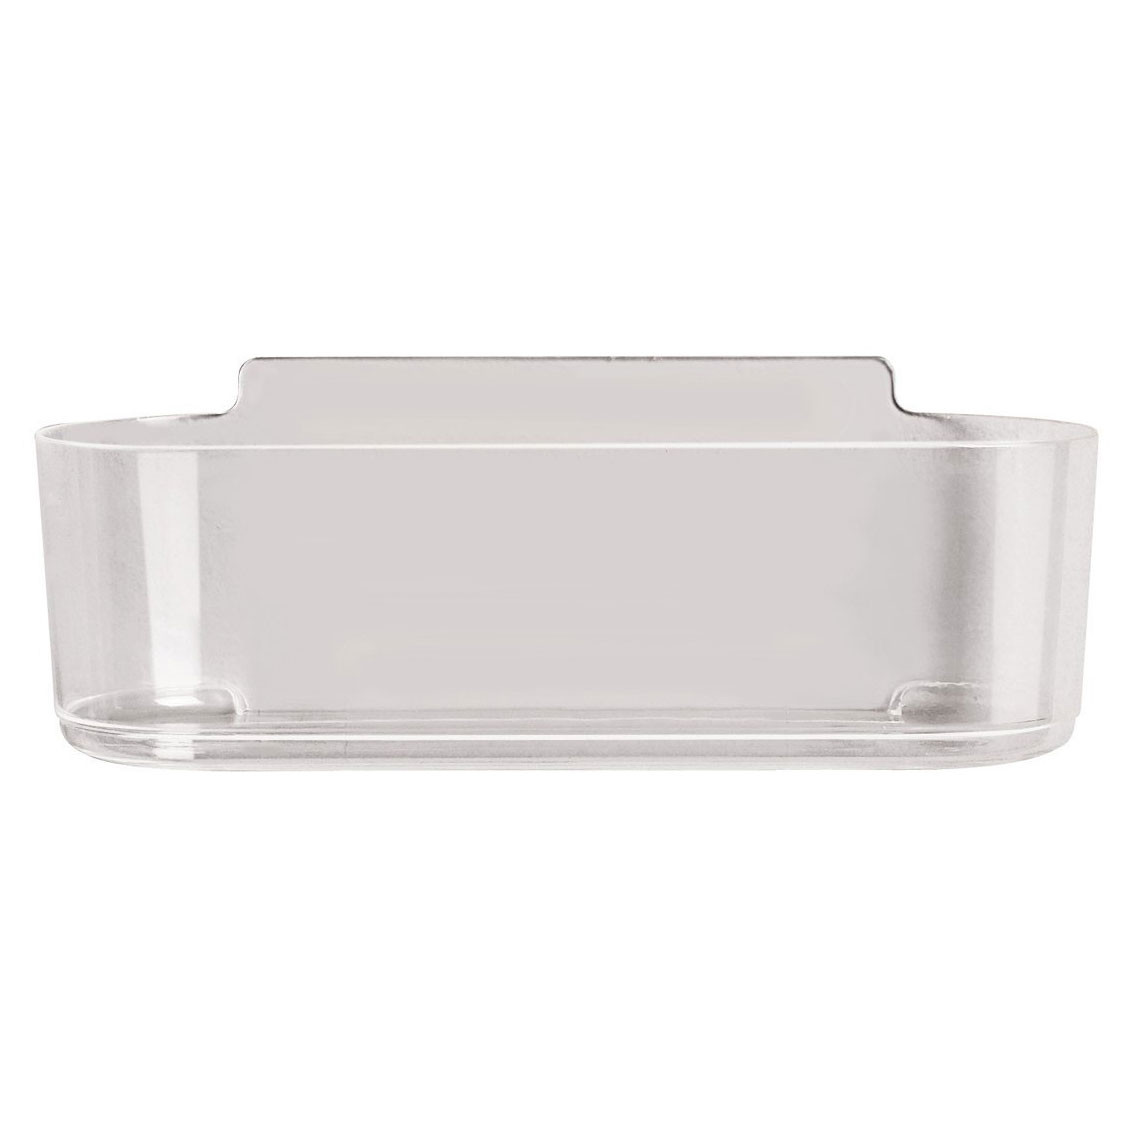 3M HOM-15 Command Organizer Caddy Large Clear (051141943169) [3]